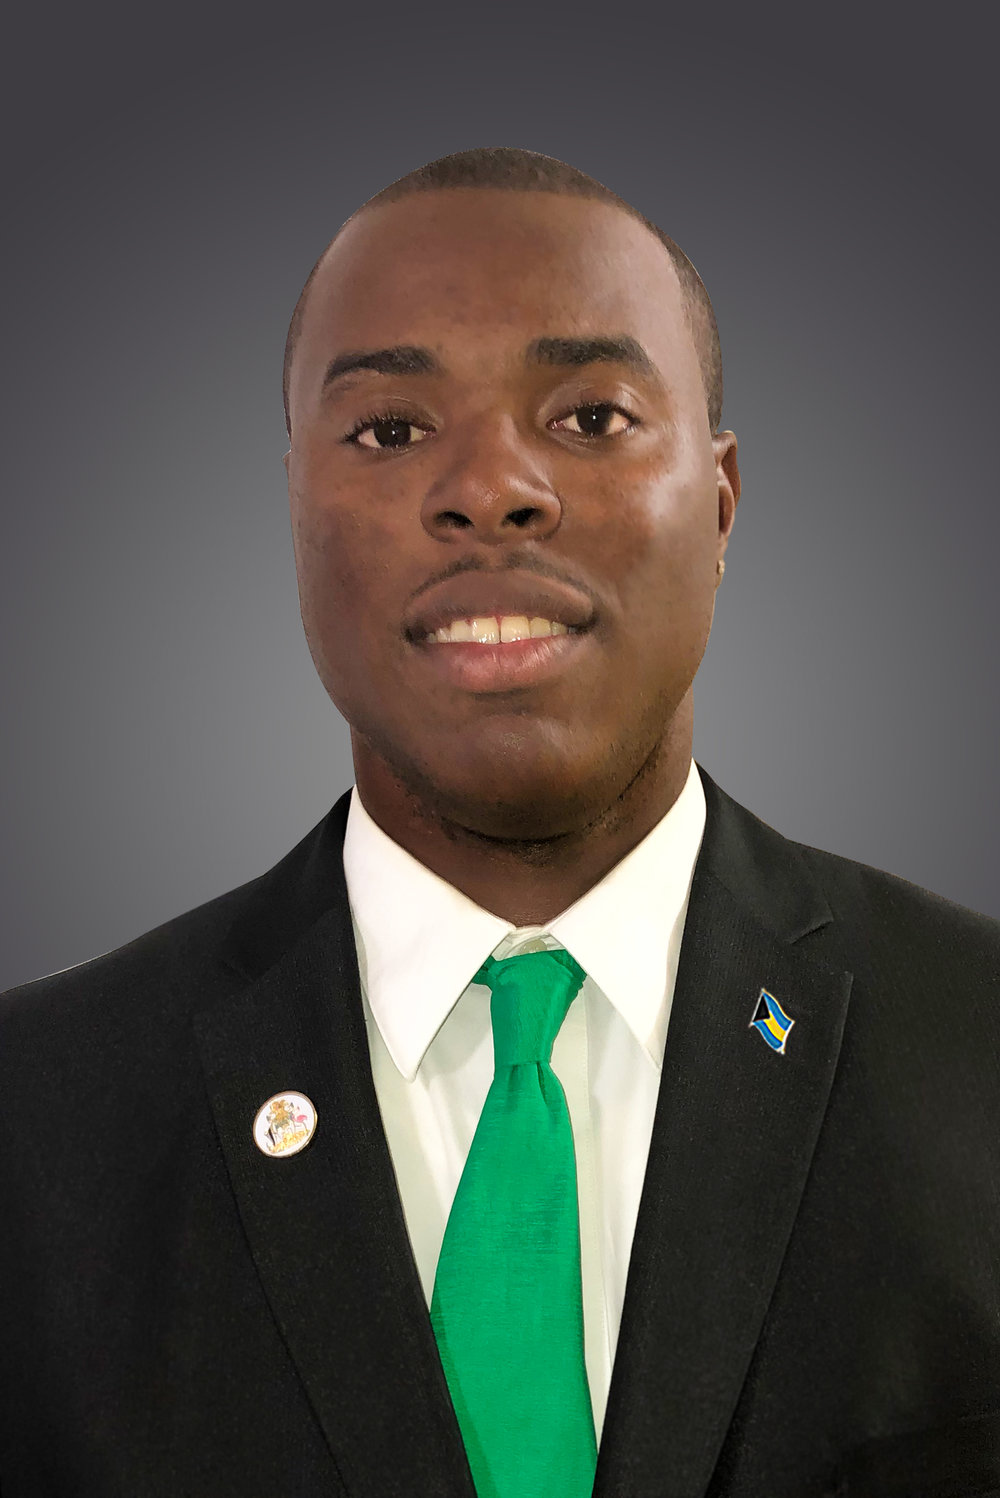 Mr. Laron Moxey - President, Young Democrats Alliance